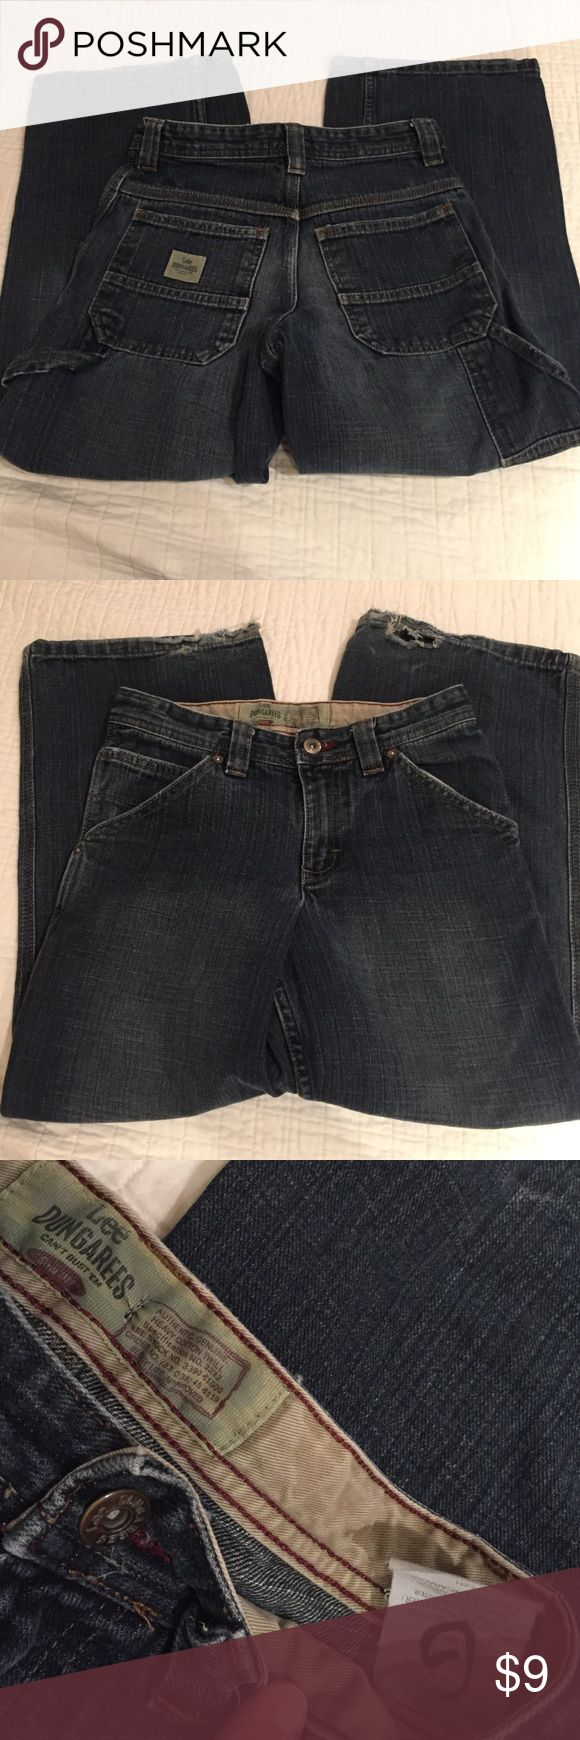 Lee Dungarees cargo jeans Lees boys wideleg cargo pants, good condition with wear on the hems (see pictures). Price reflects this. Top Rated Seller & Fast Shipper! Bundle for great value! Reasonable offers accepted! Pet & smoke free home. Lee Bottoms Jeans